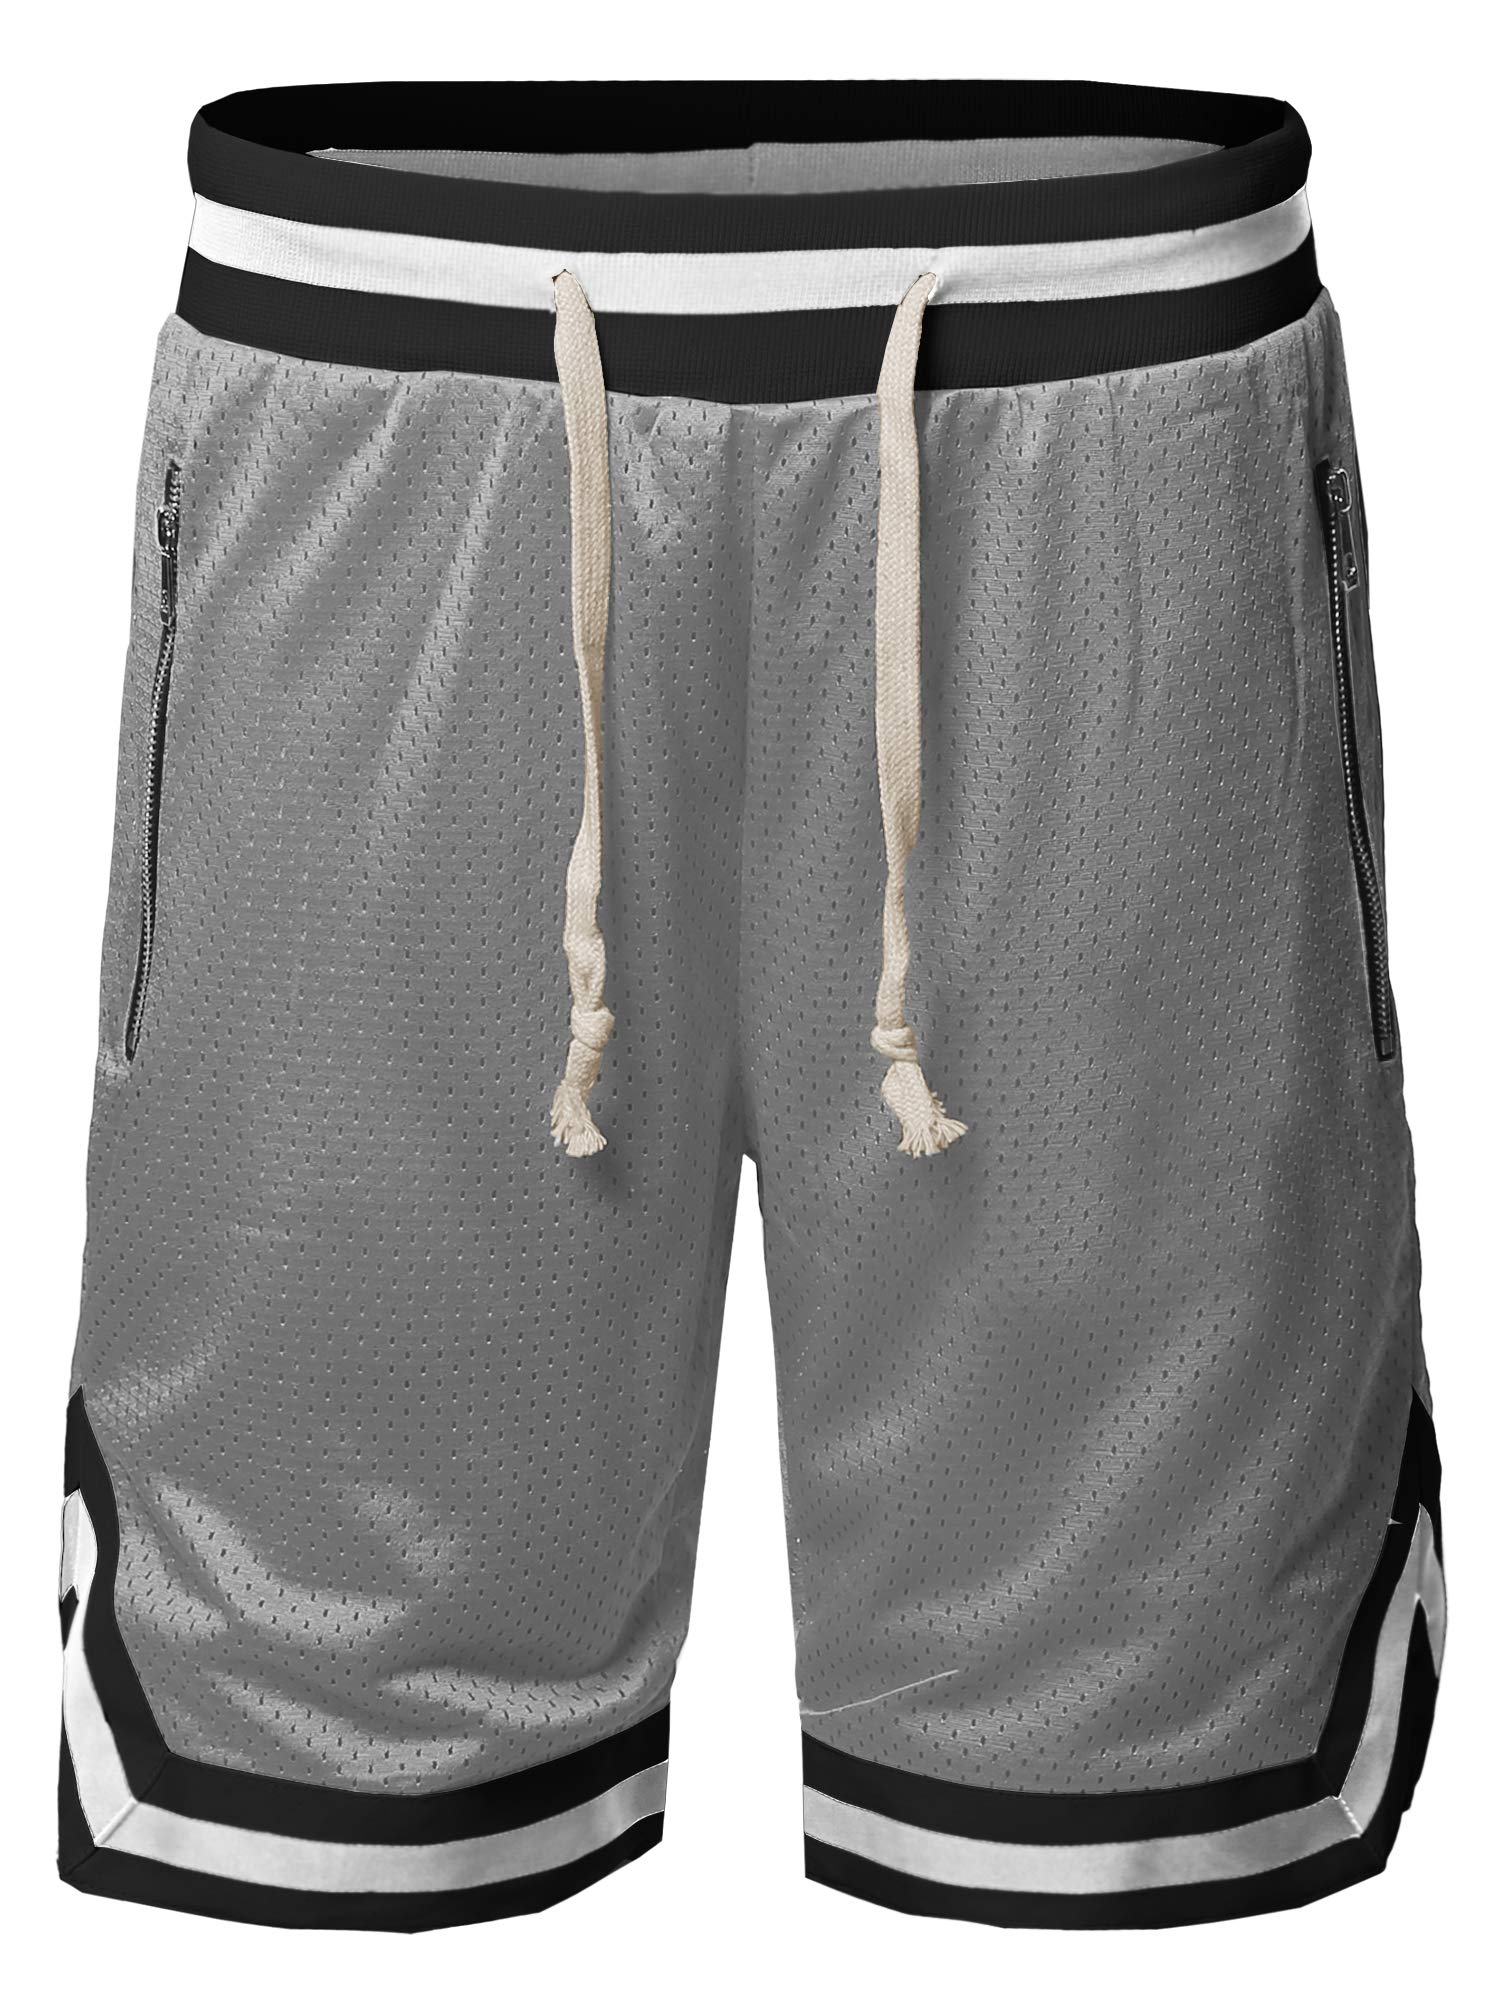 Style by William Casual Active Sports Side Pokets